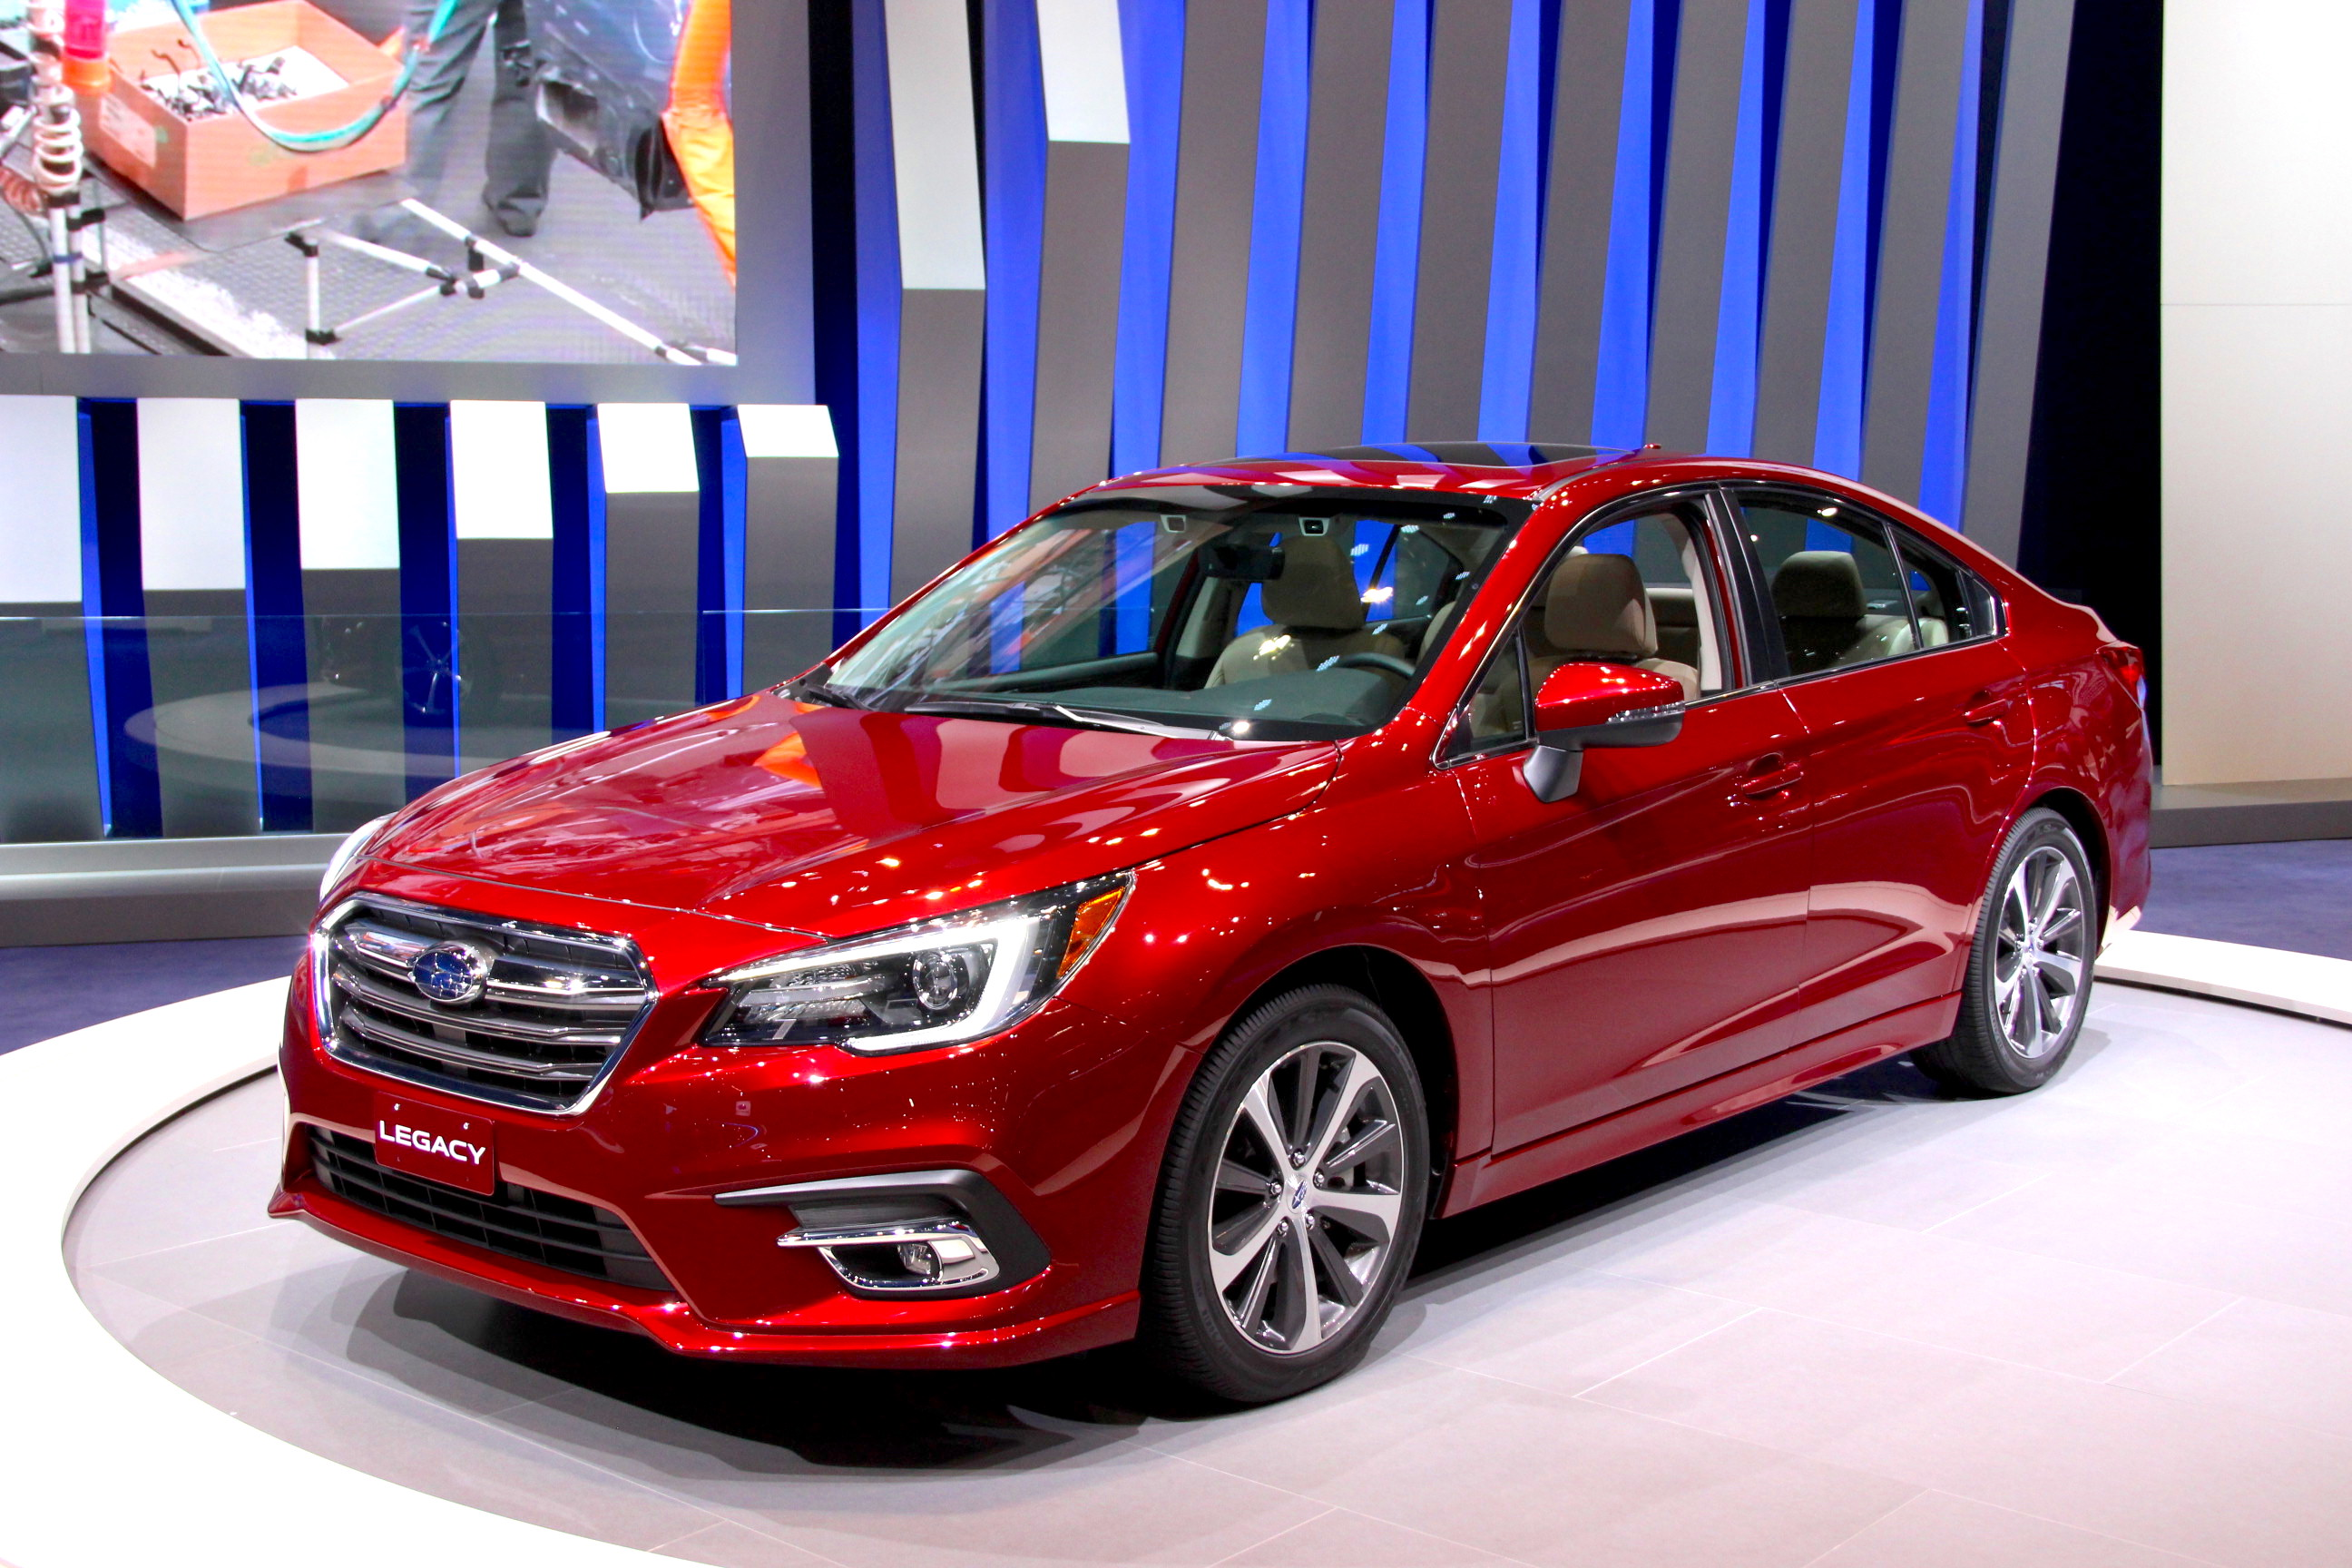 Subaru Legacy 3.6R >> Refreshed 2018 Subaru Legacy Gets a Bunch of Little Updates » AutoGuide.com News